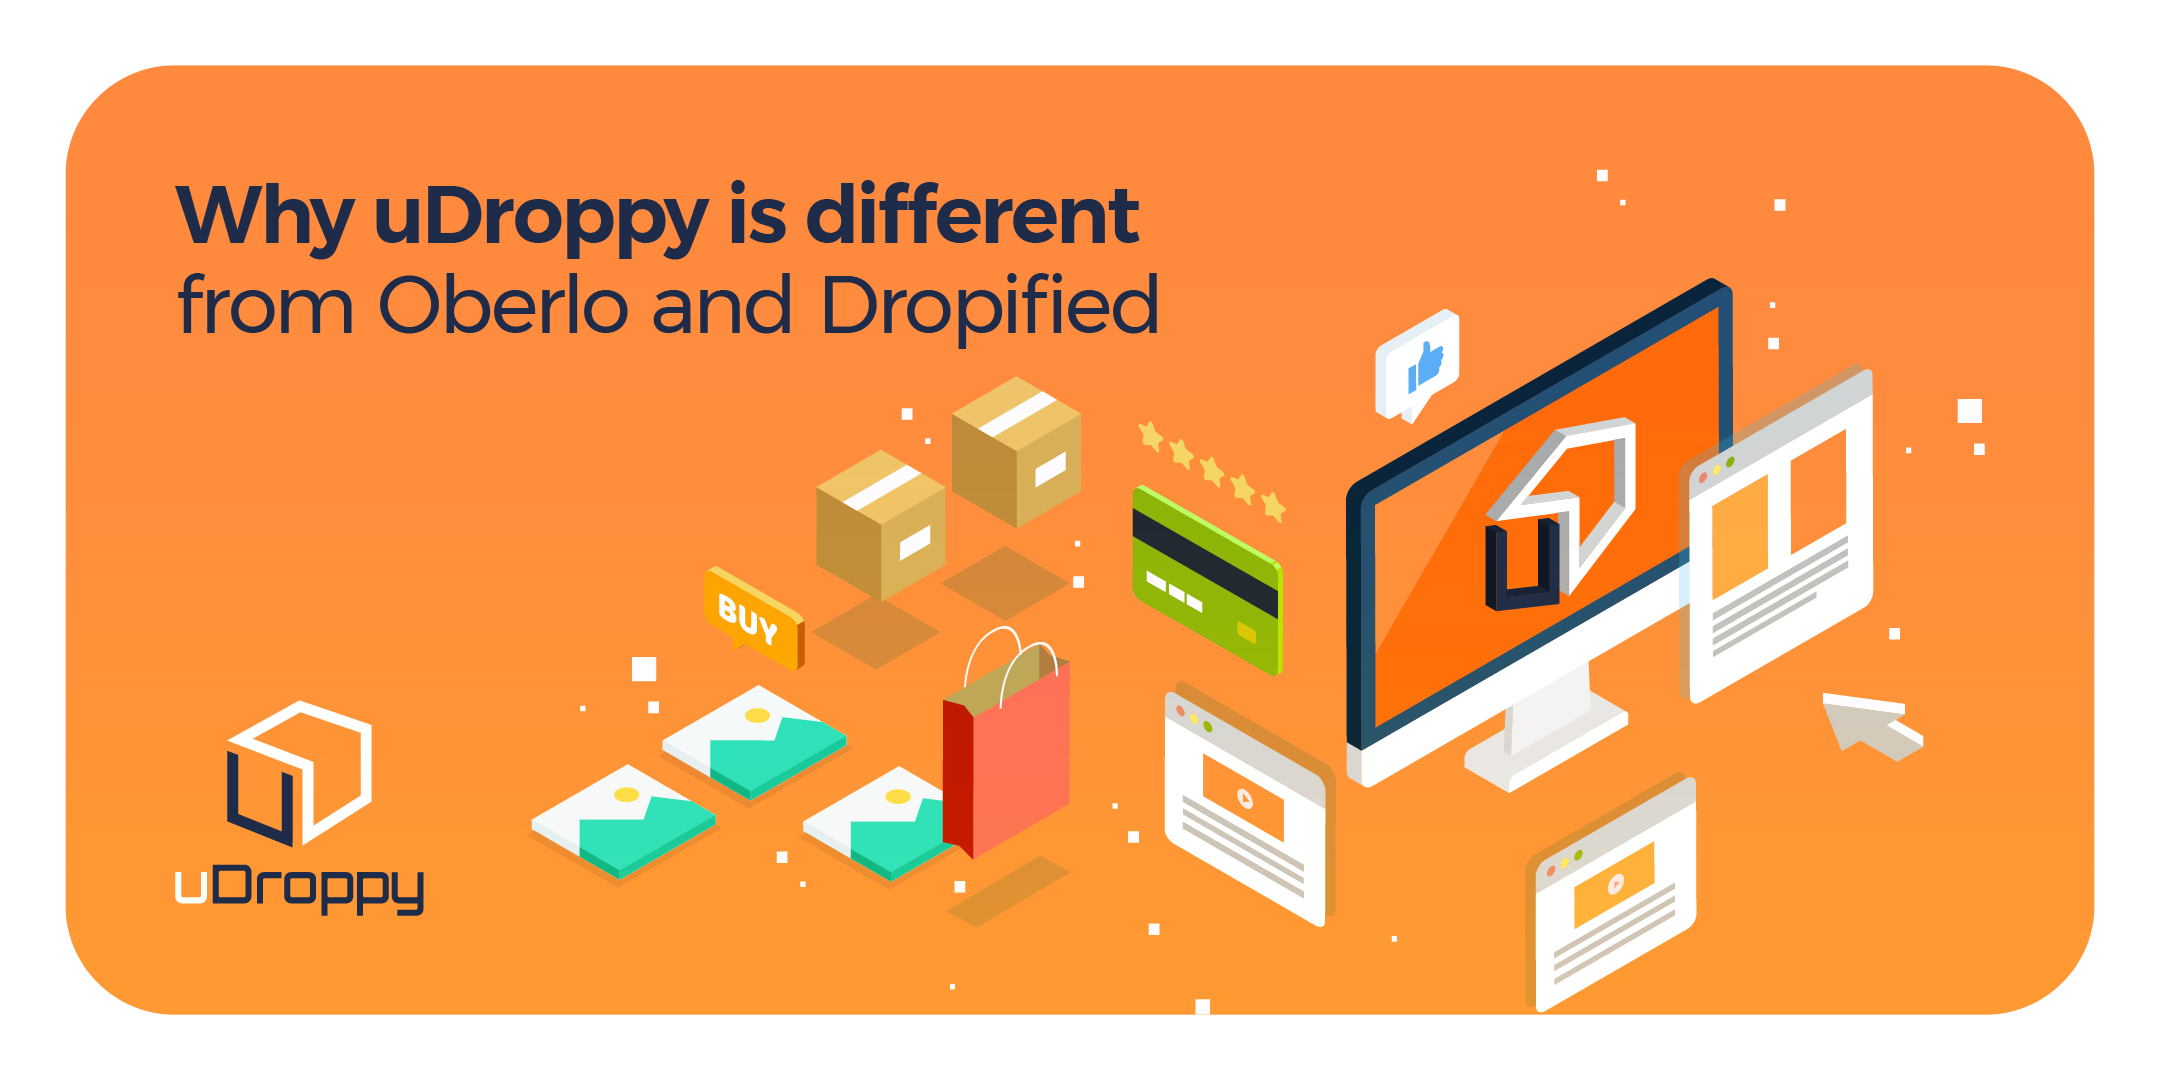 Why uDroppy is different from Oberlo and Dropified and why